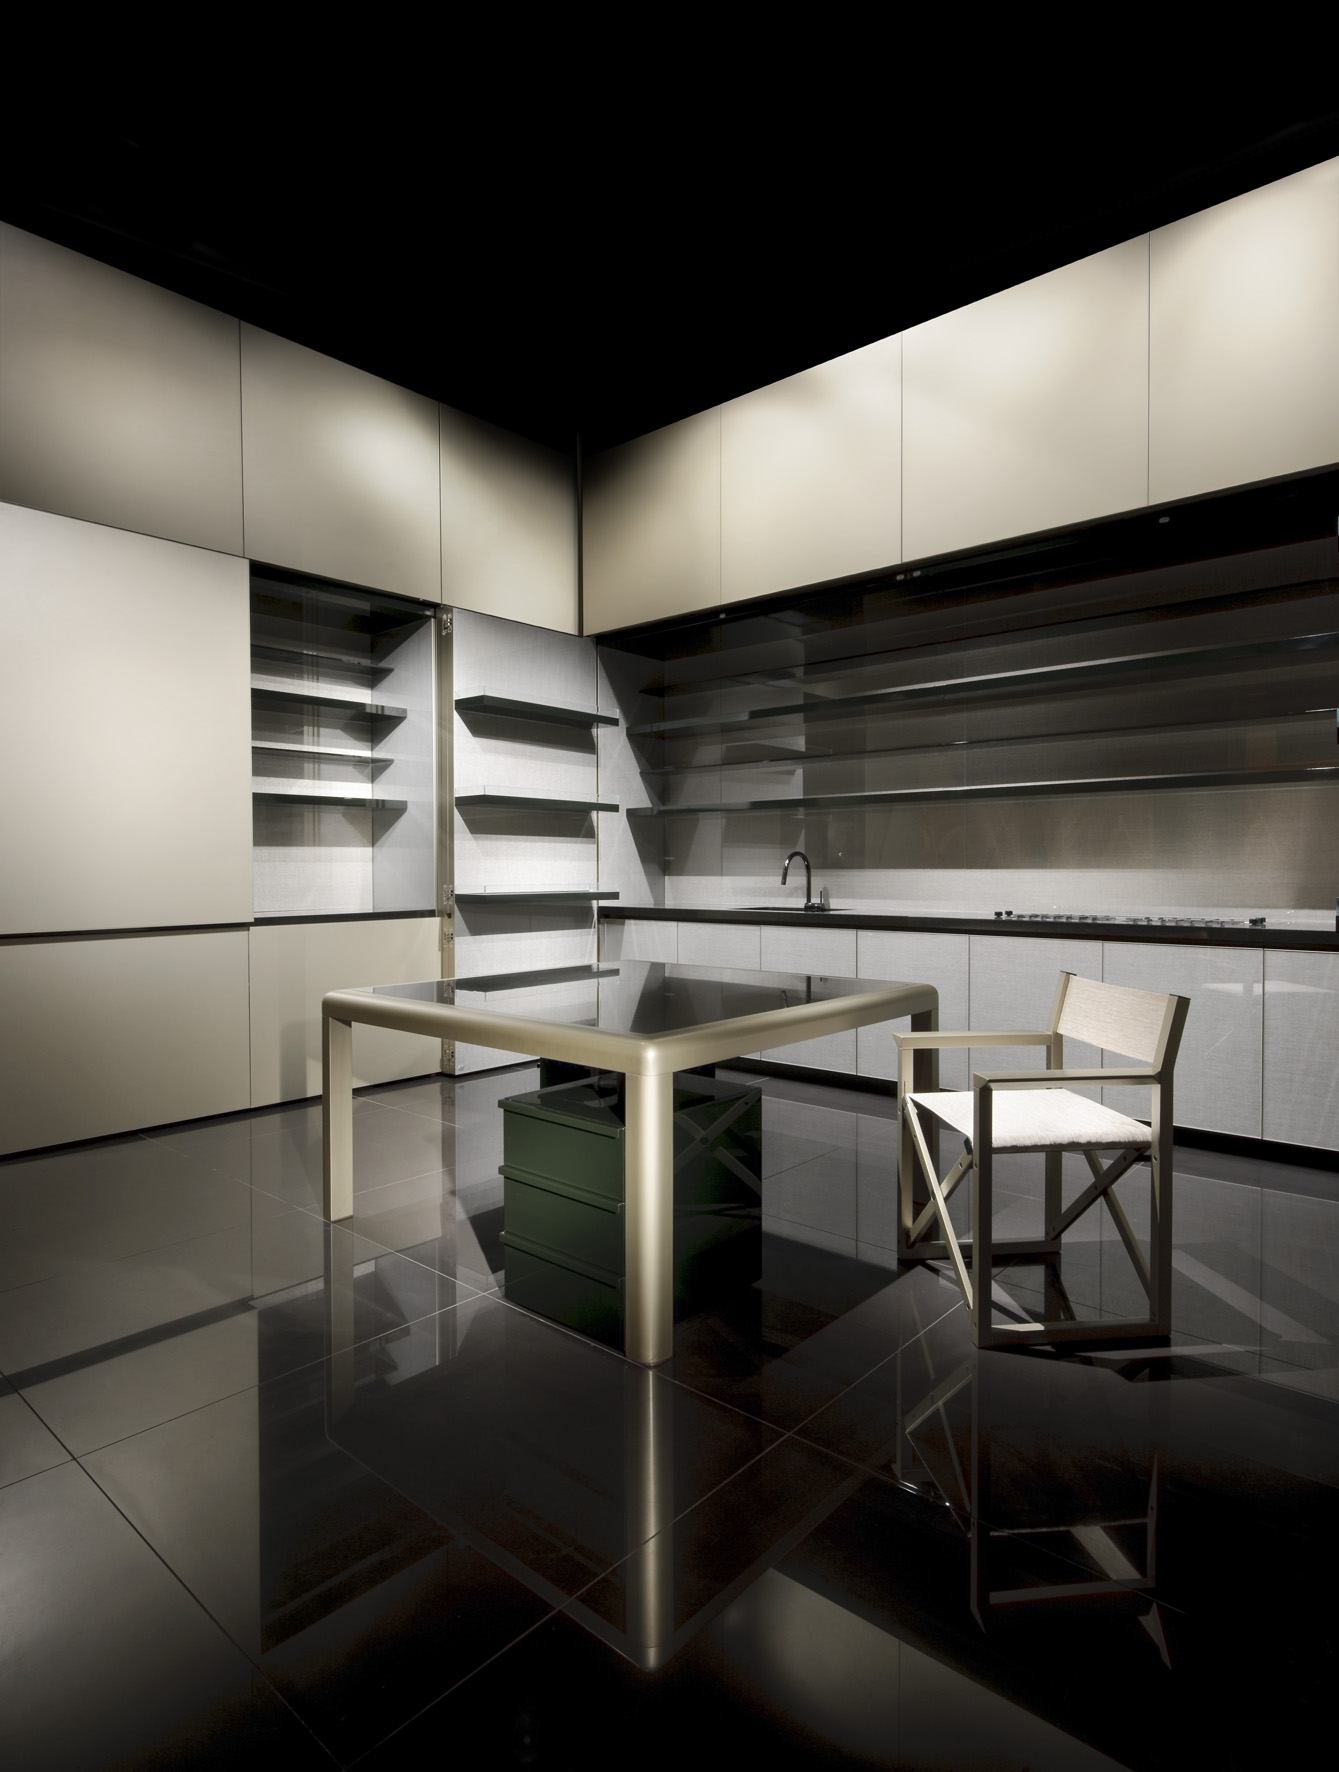 disappearing sleek and polish kitchen design - calyx from armani casa